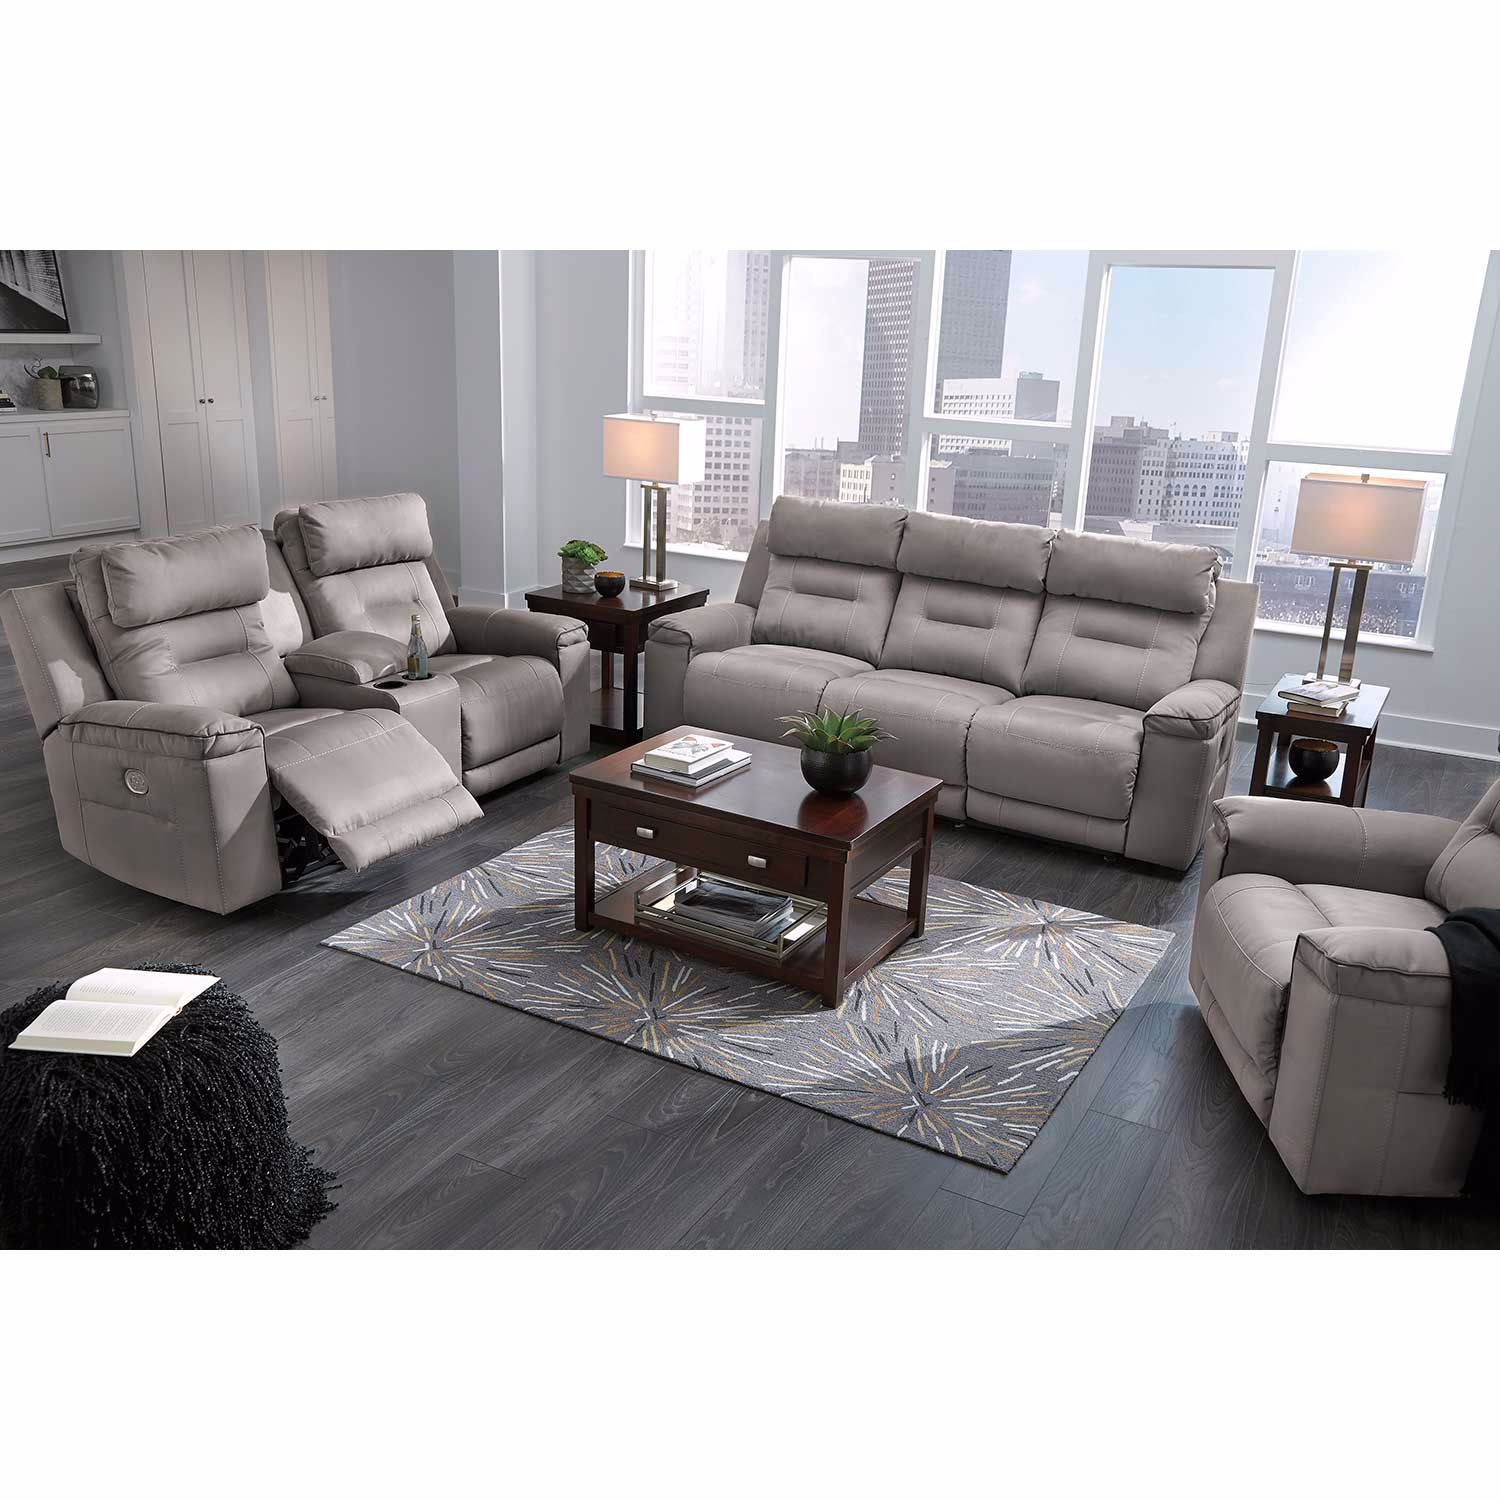 Picture of Trampton Power Reclining Sofa with Headrest and Lumbar